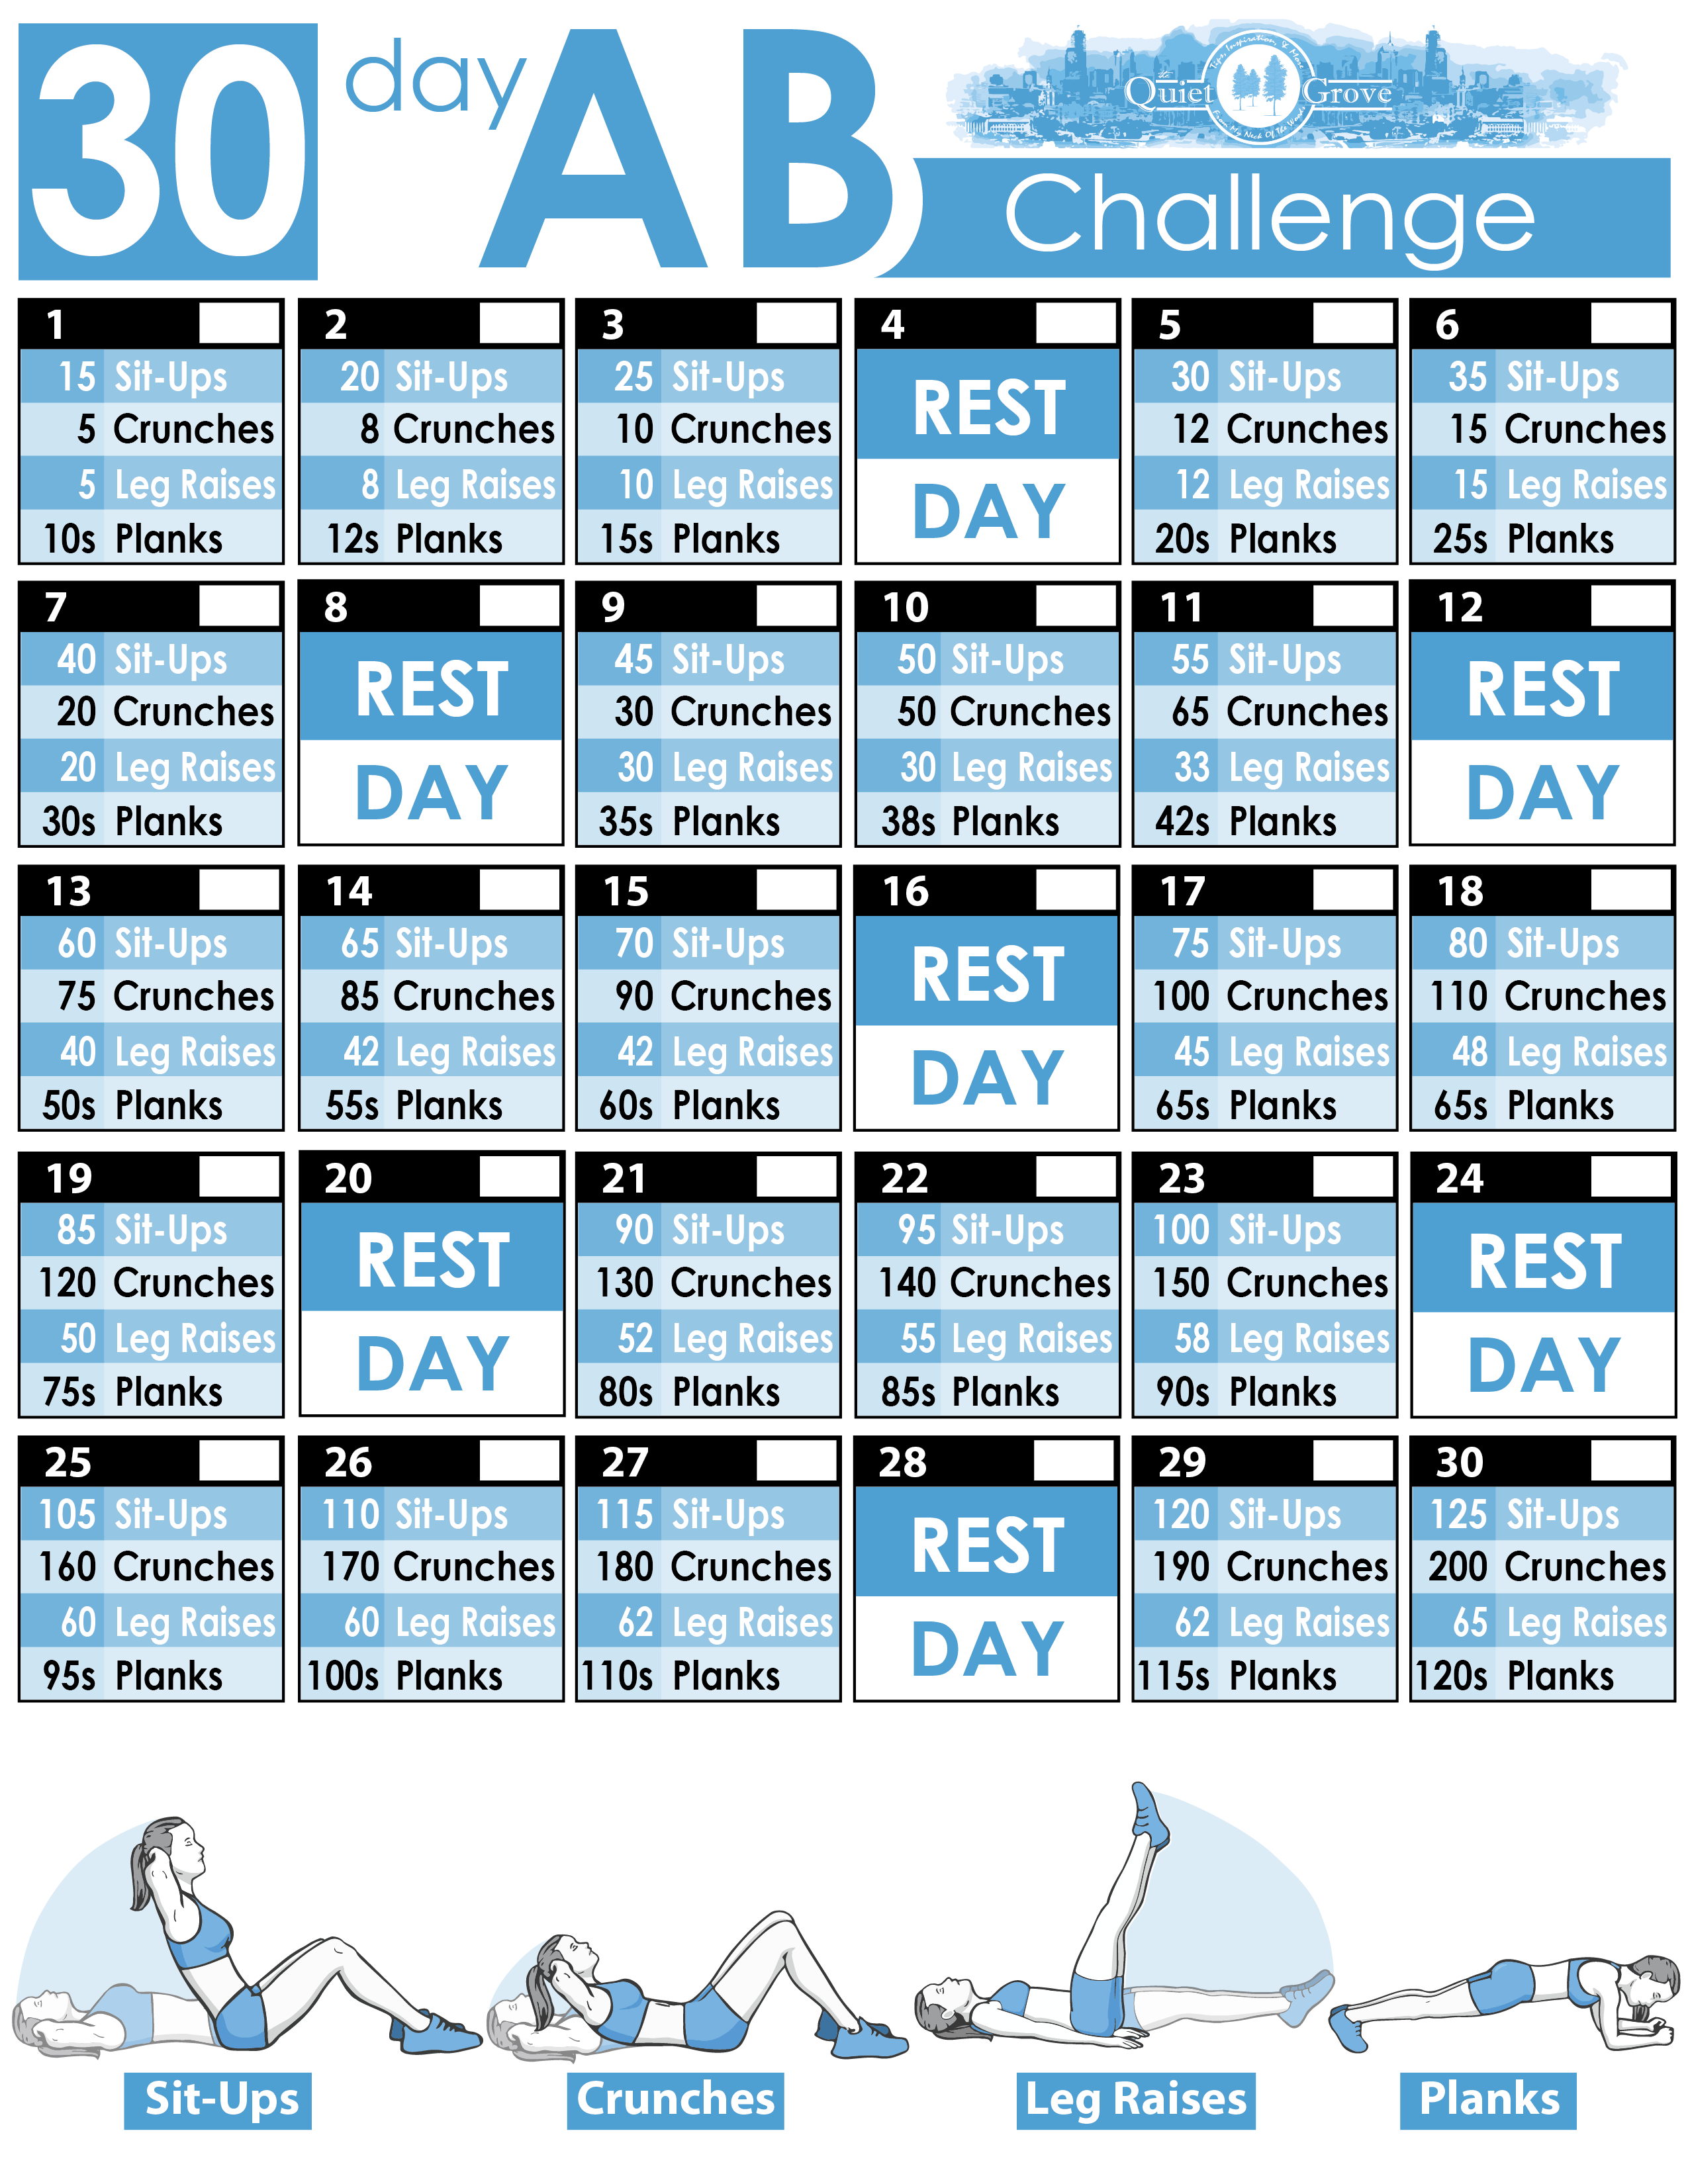 photo about 30 Day Abs Challenge Printable named 30-Working day AB Difficulty (With Cost-free Printable) ⋆ The Calm Grove